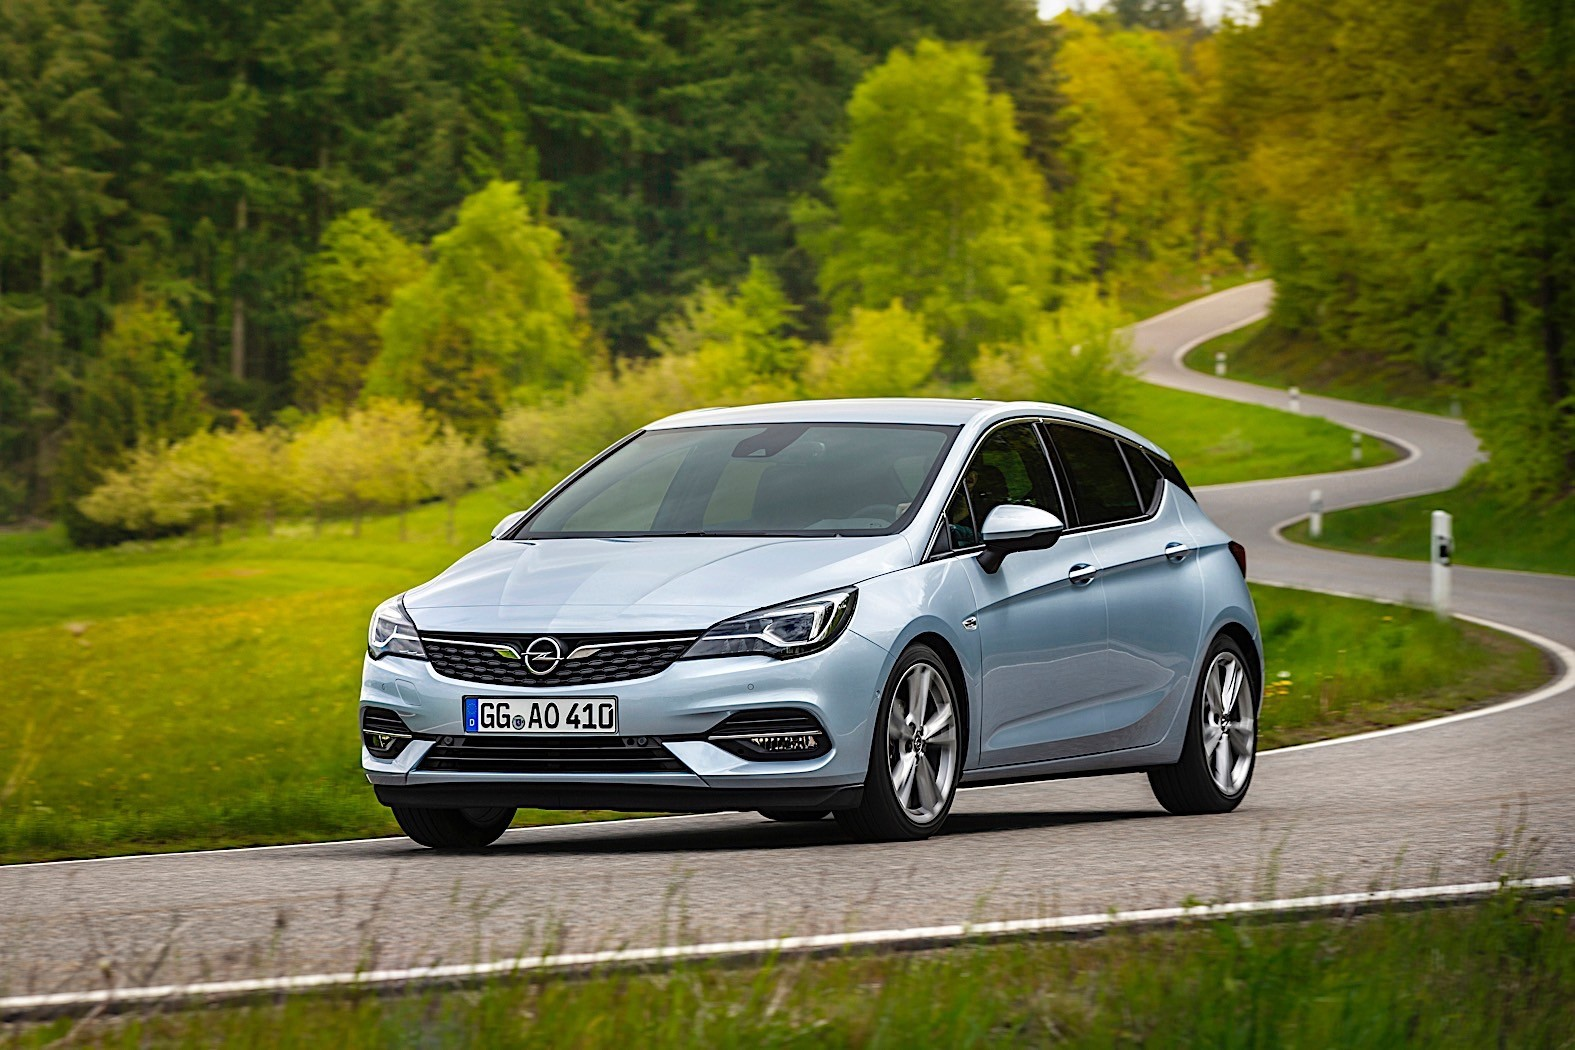 2020-opel-astra-comes-to-the-world-with-better-aerodynamics-and-new-transmission_8